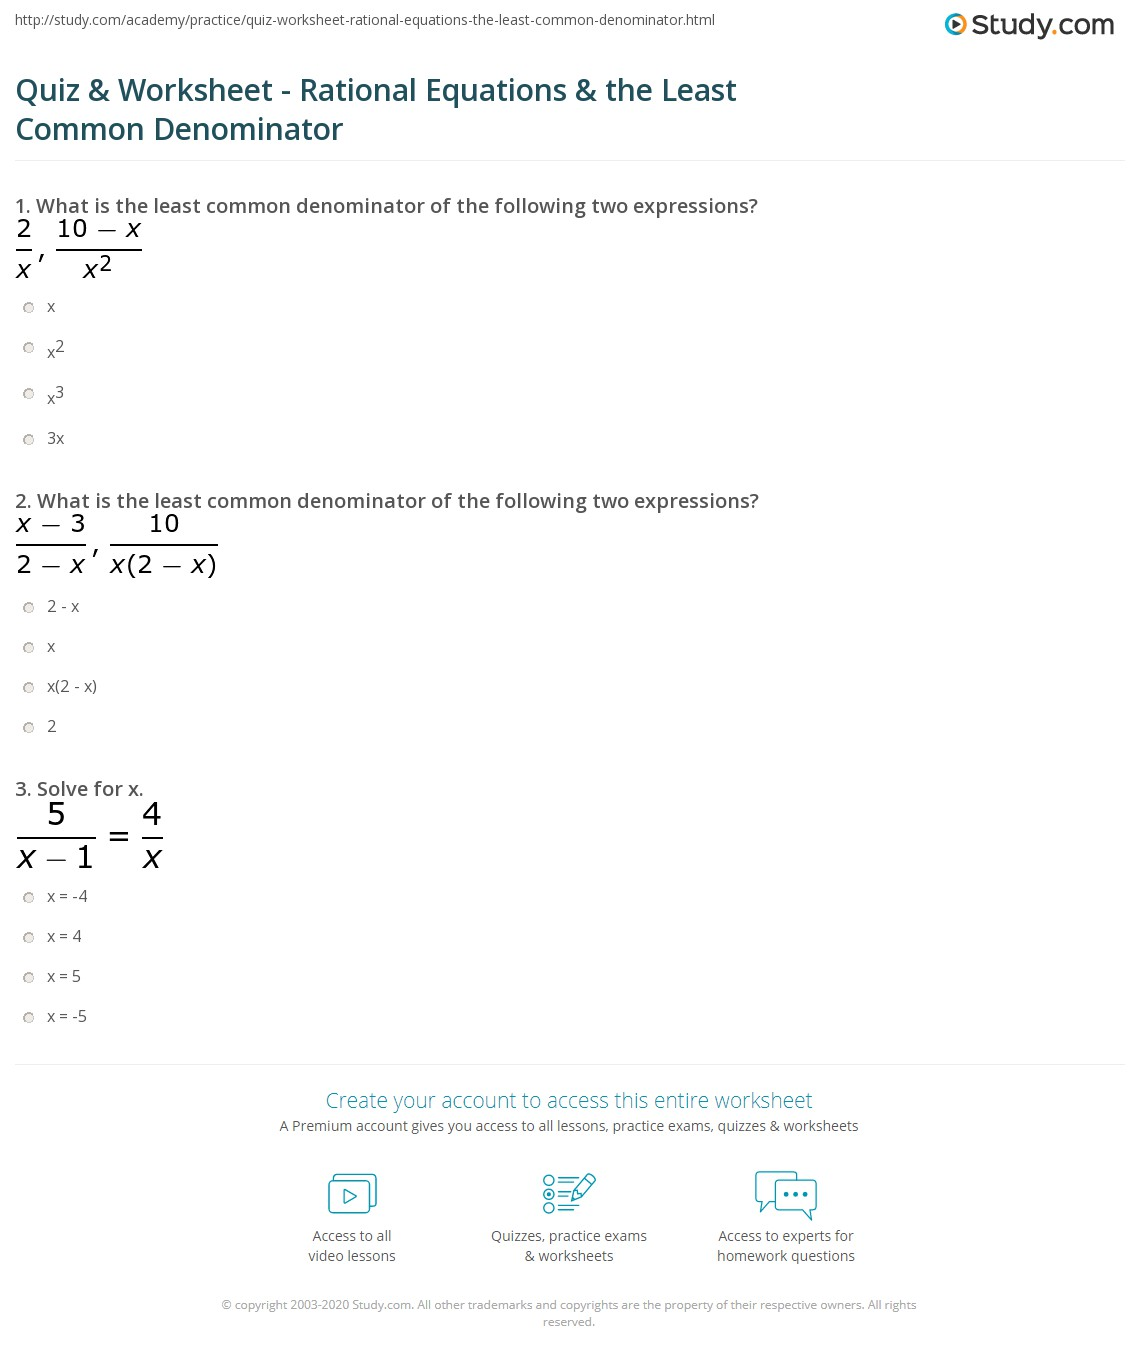 Quiz & Worksheet - Rational Equations & the Least Common Denominator ...